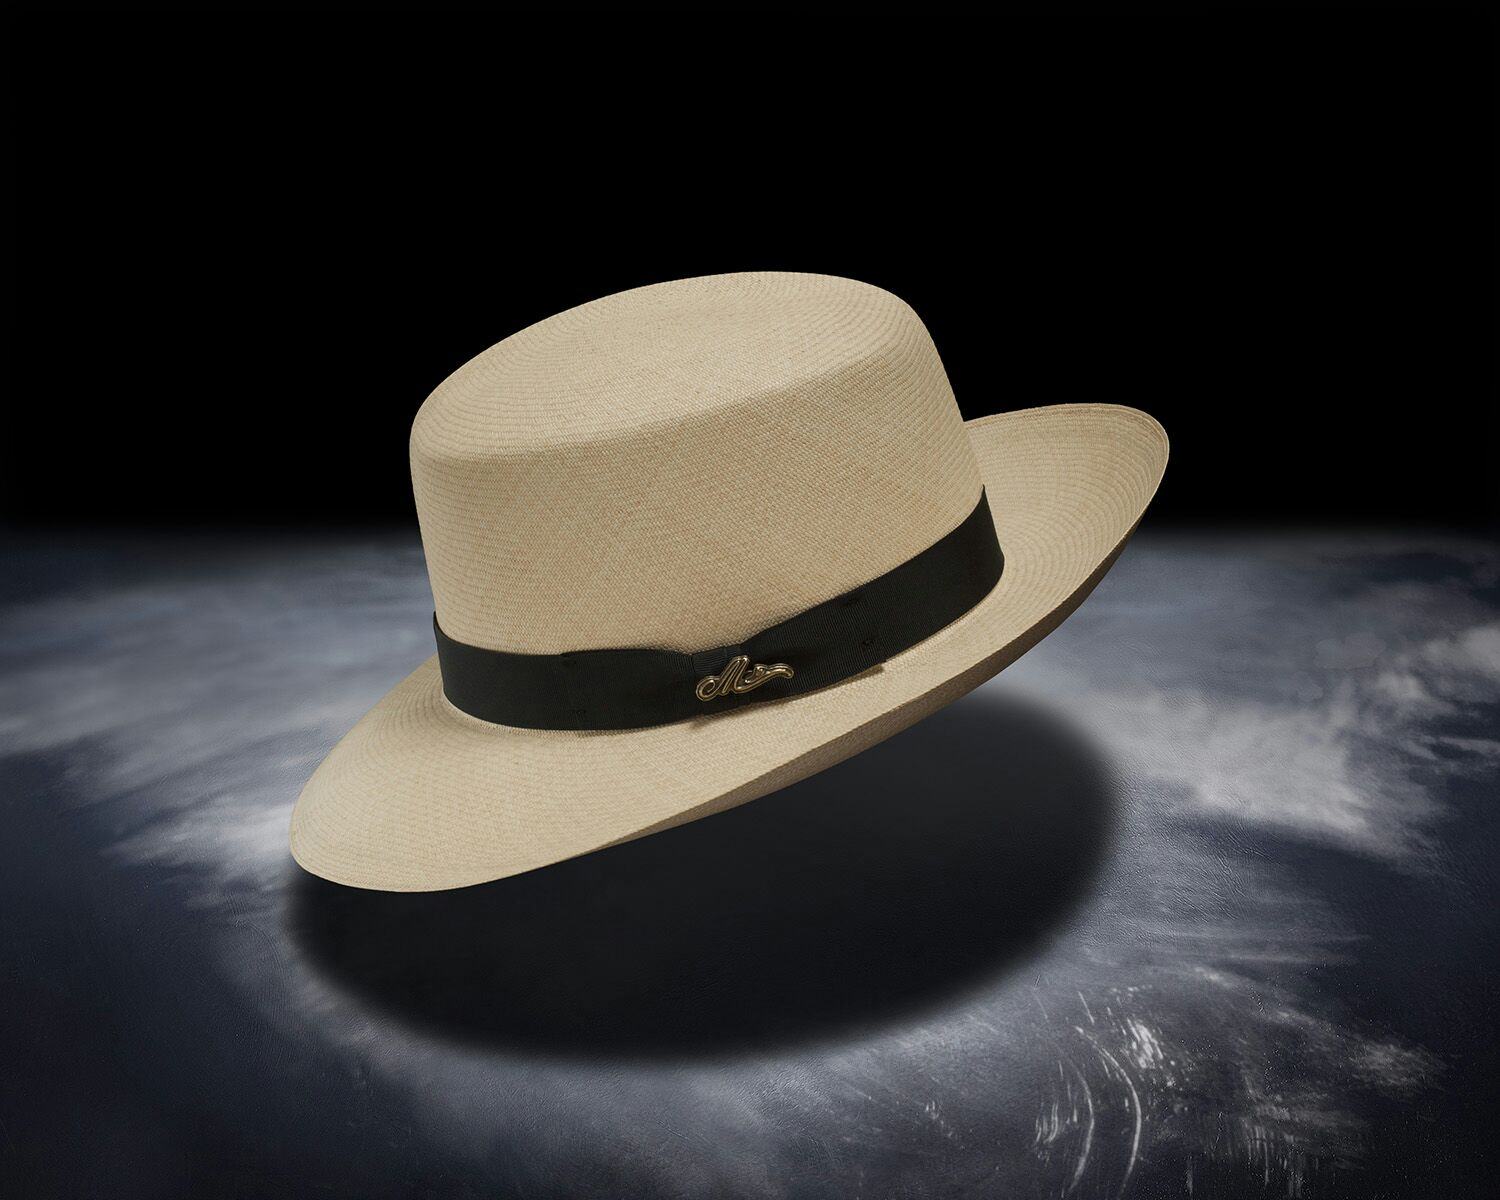 panama hat wikipedia